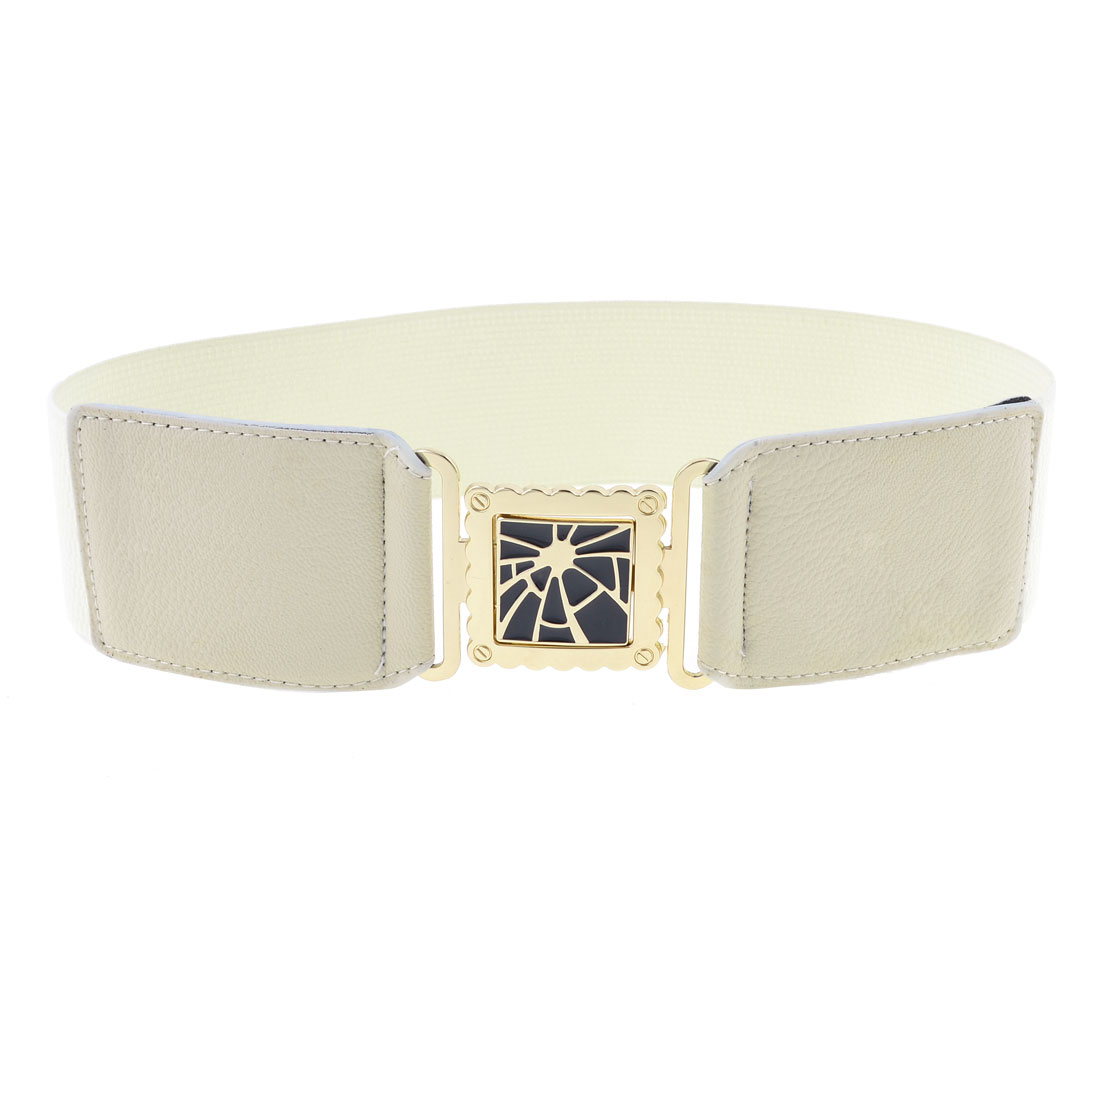 Square Shape Interlocking Buckle 6cm Wide Off White Textured Elastic Waist Belt